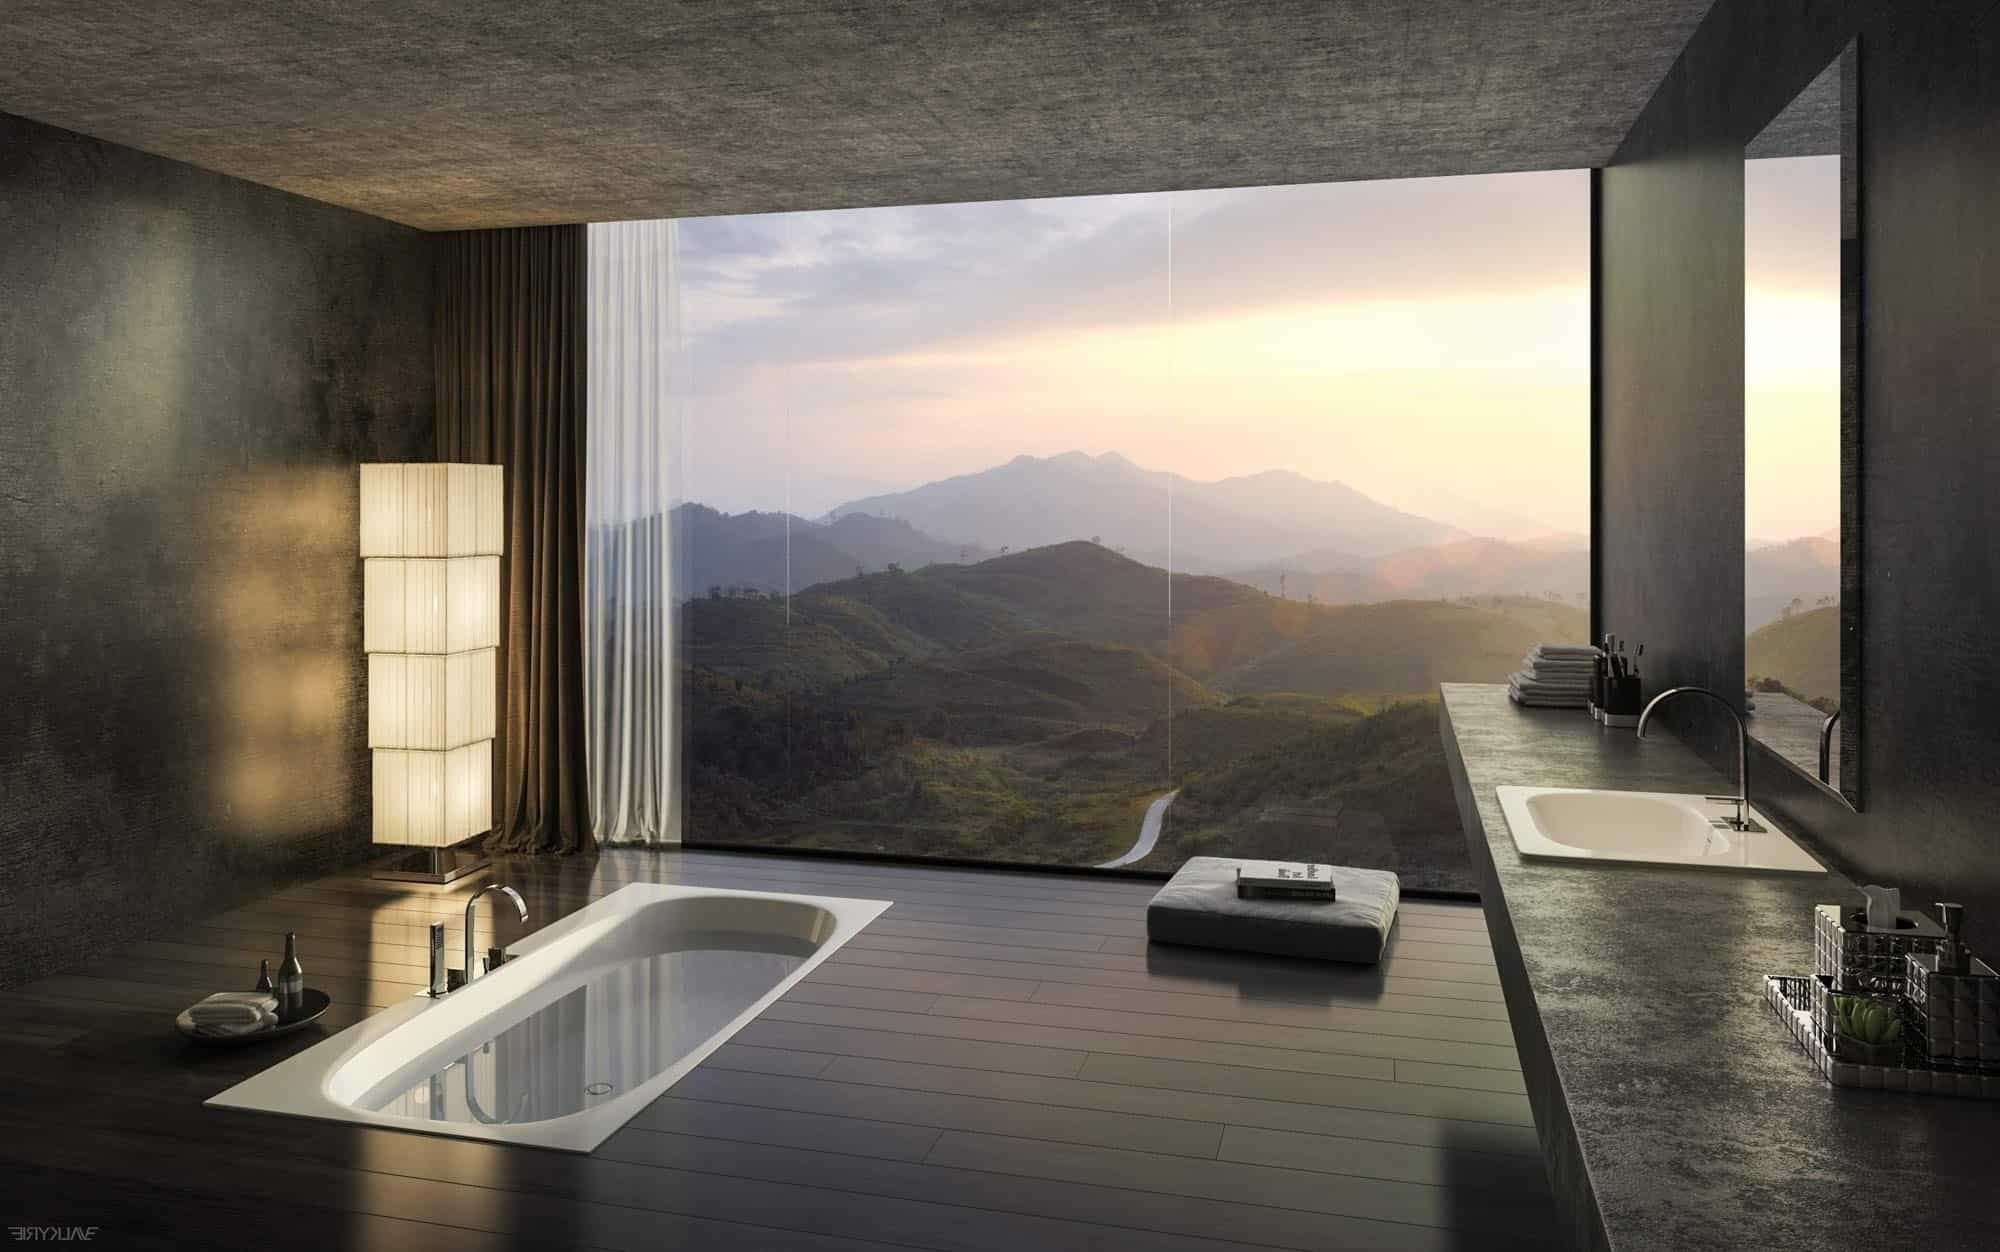 40 stunning luxury bathrooms with incredible views - Luxury bathroom designs with stunning interior ...